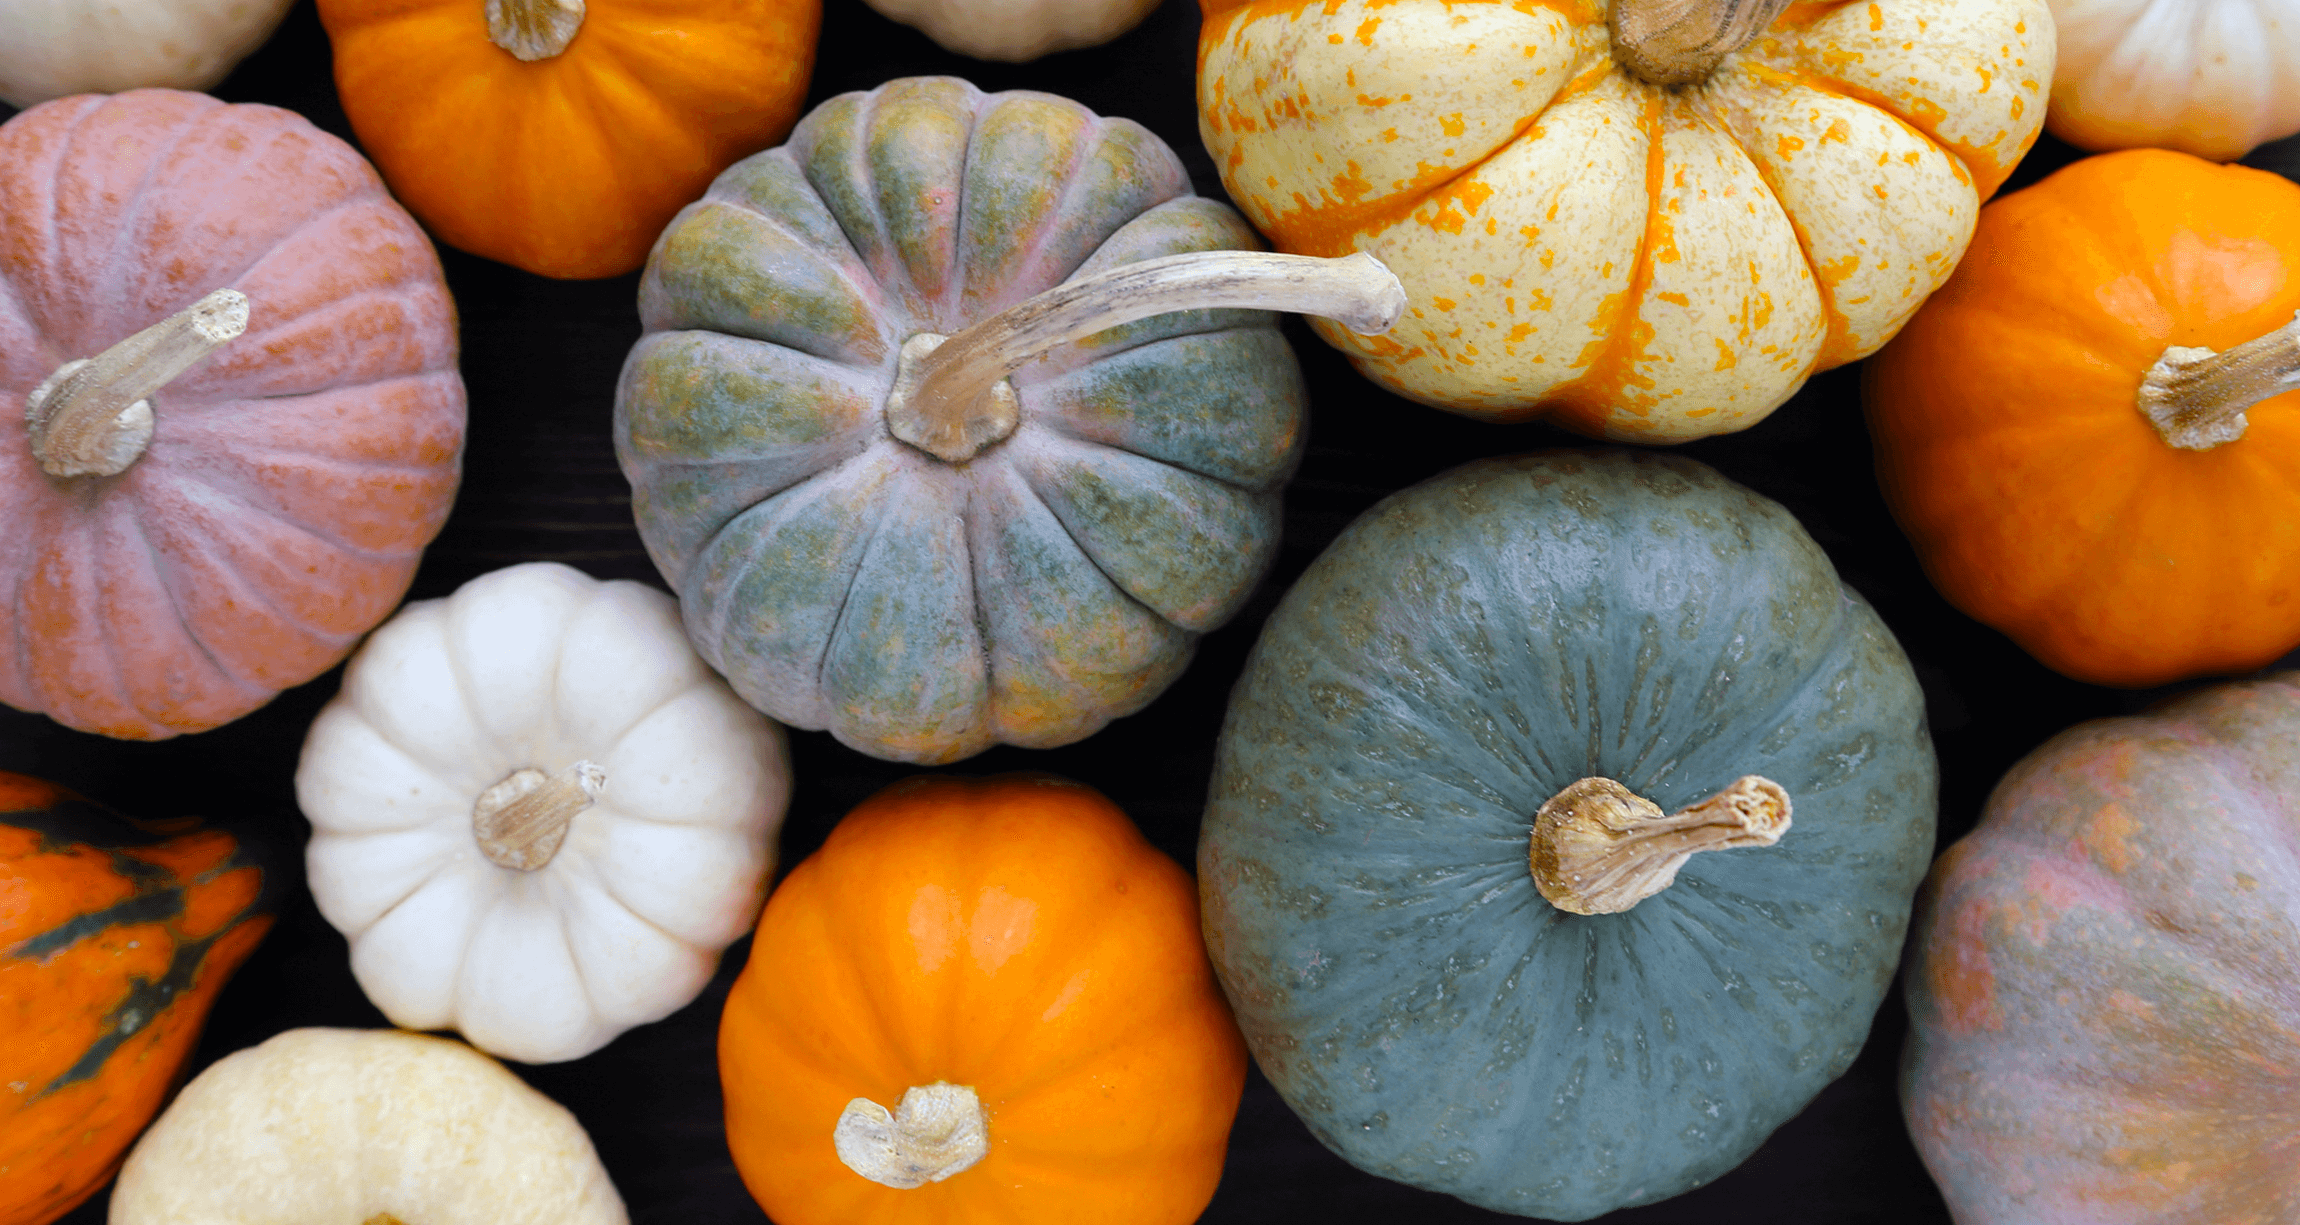 9 Proven Health Benefits of Pumpkins + 9 Truly Healthy Pumpkin Recipes (That Taste Delicious!)